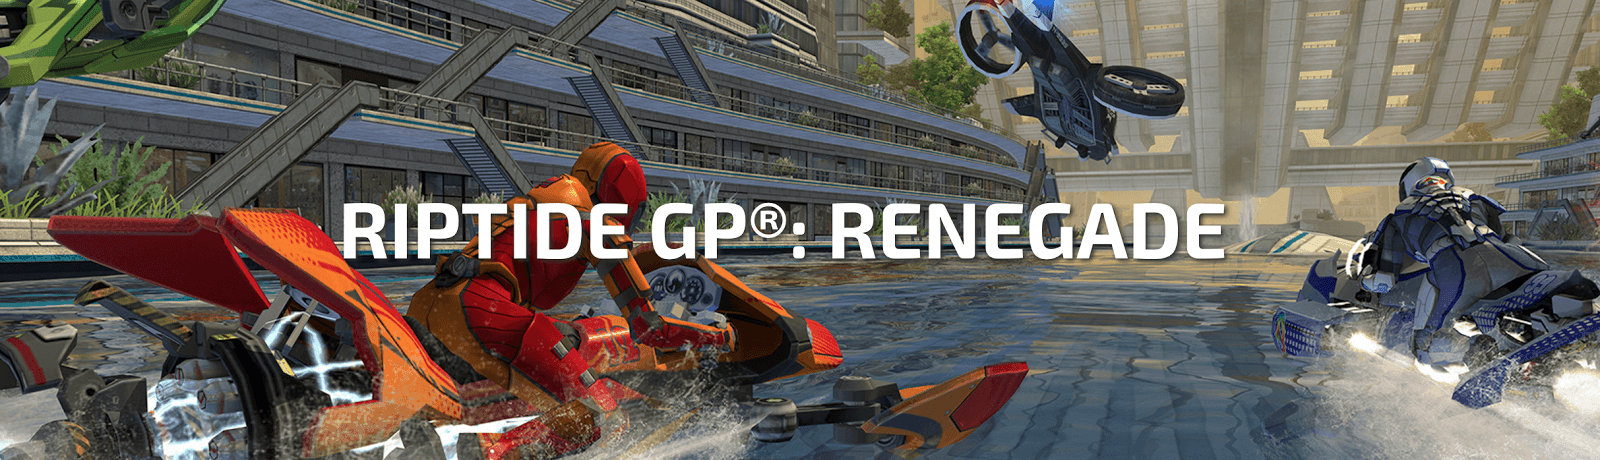 22. Riptide GP Renegade for Windows 10 PC 2